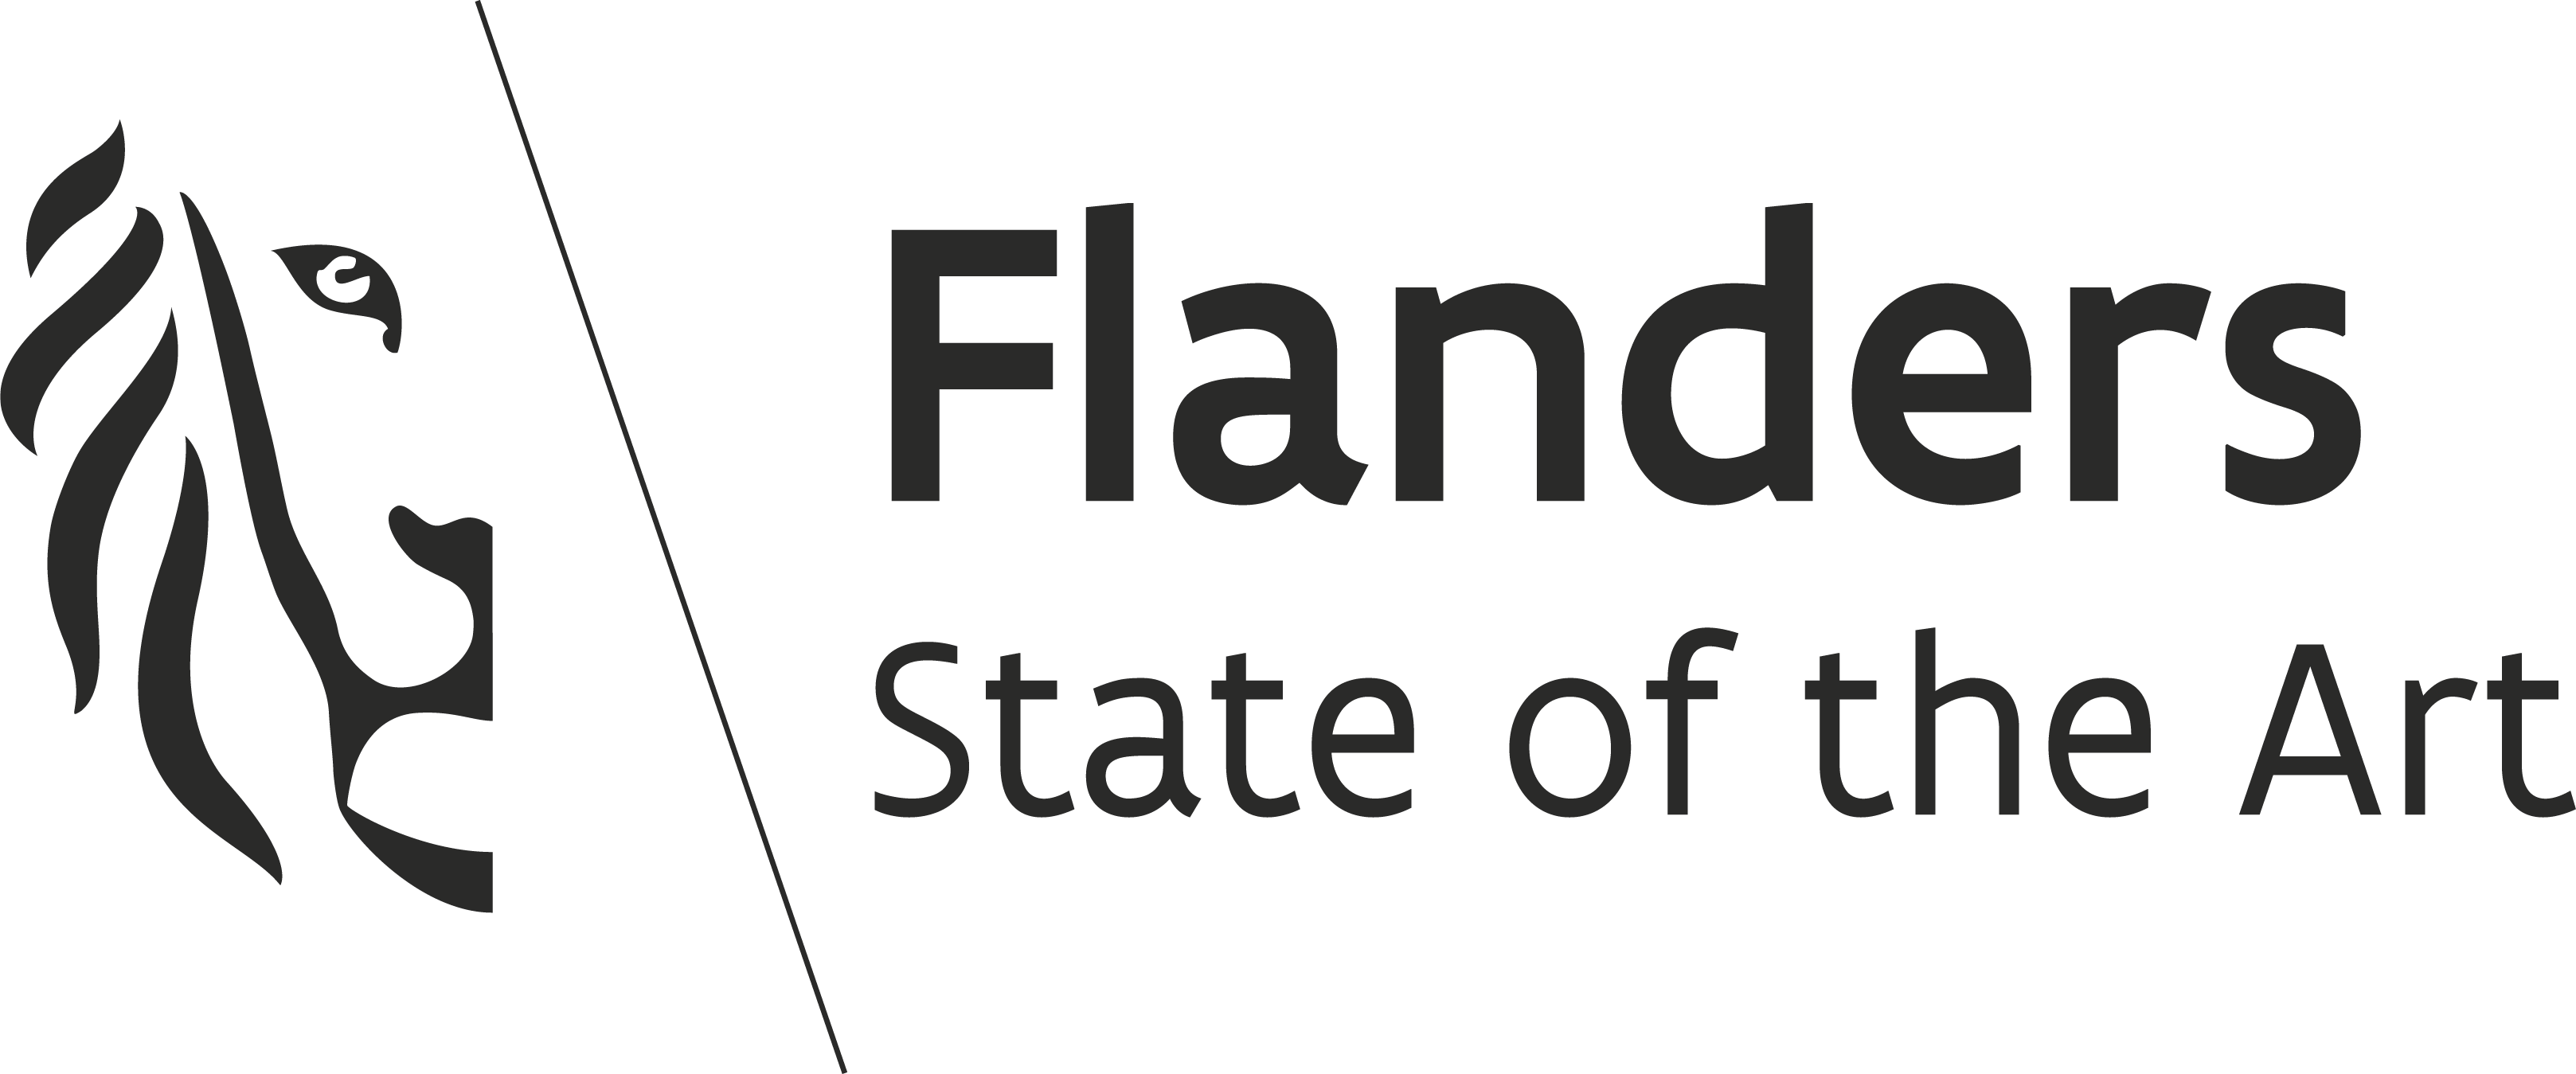 Logo flanders State of the art